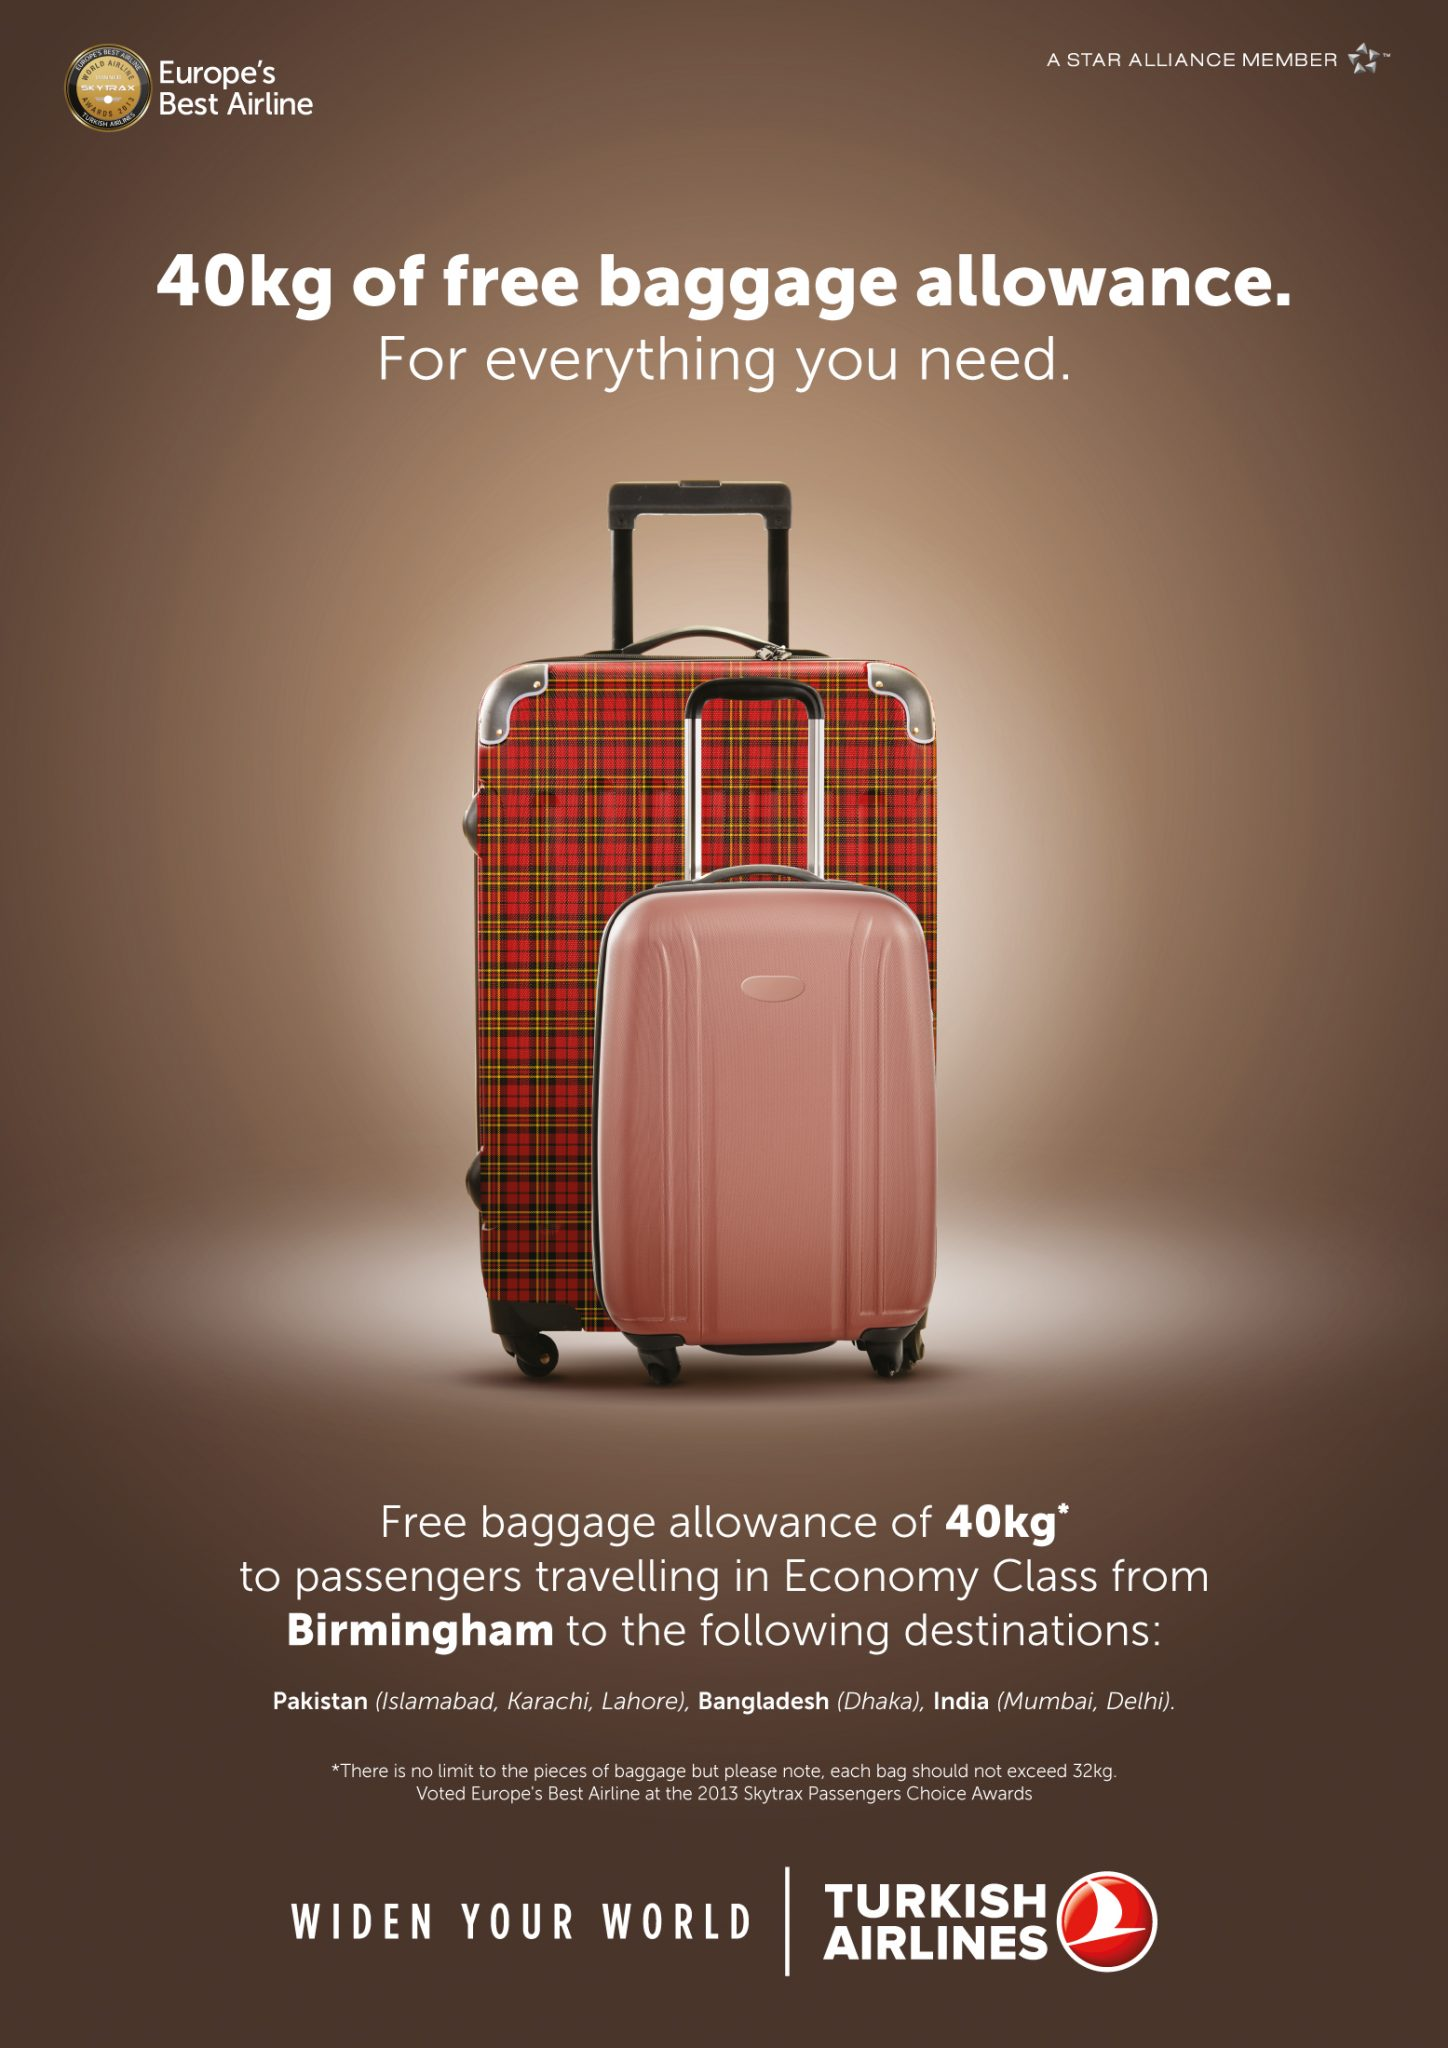 Turkish Airlines Baggage Allowance From Birmingham